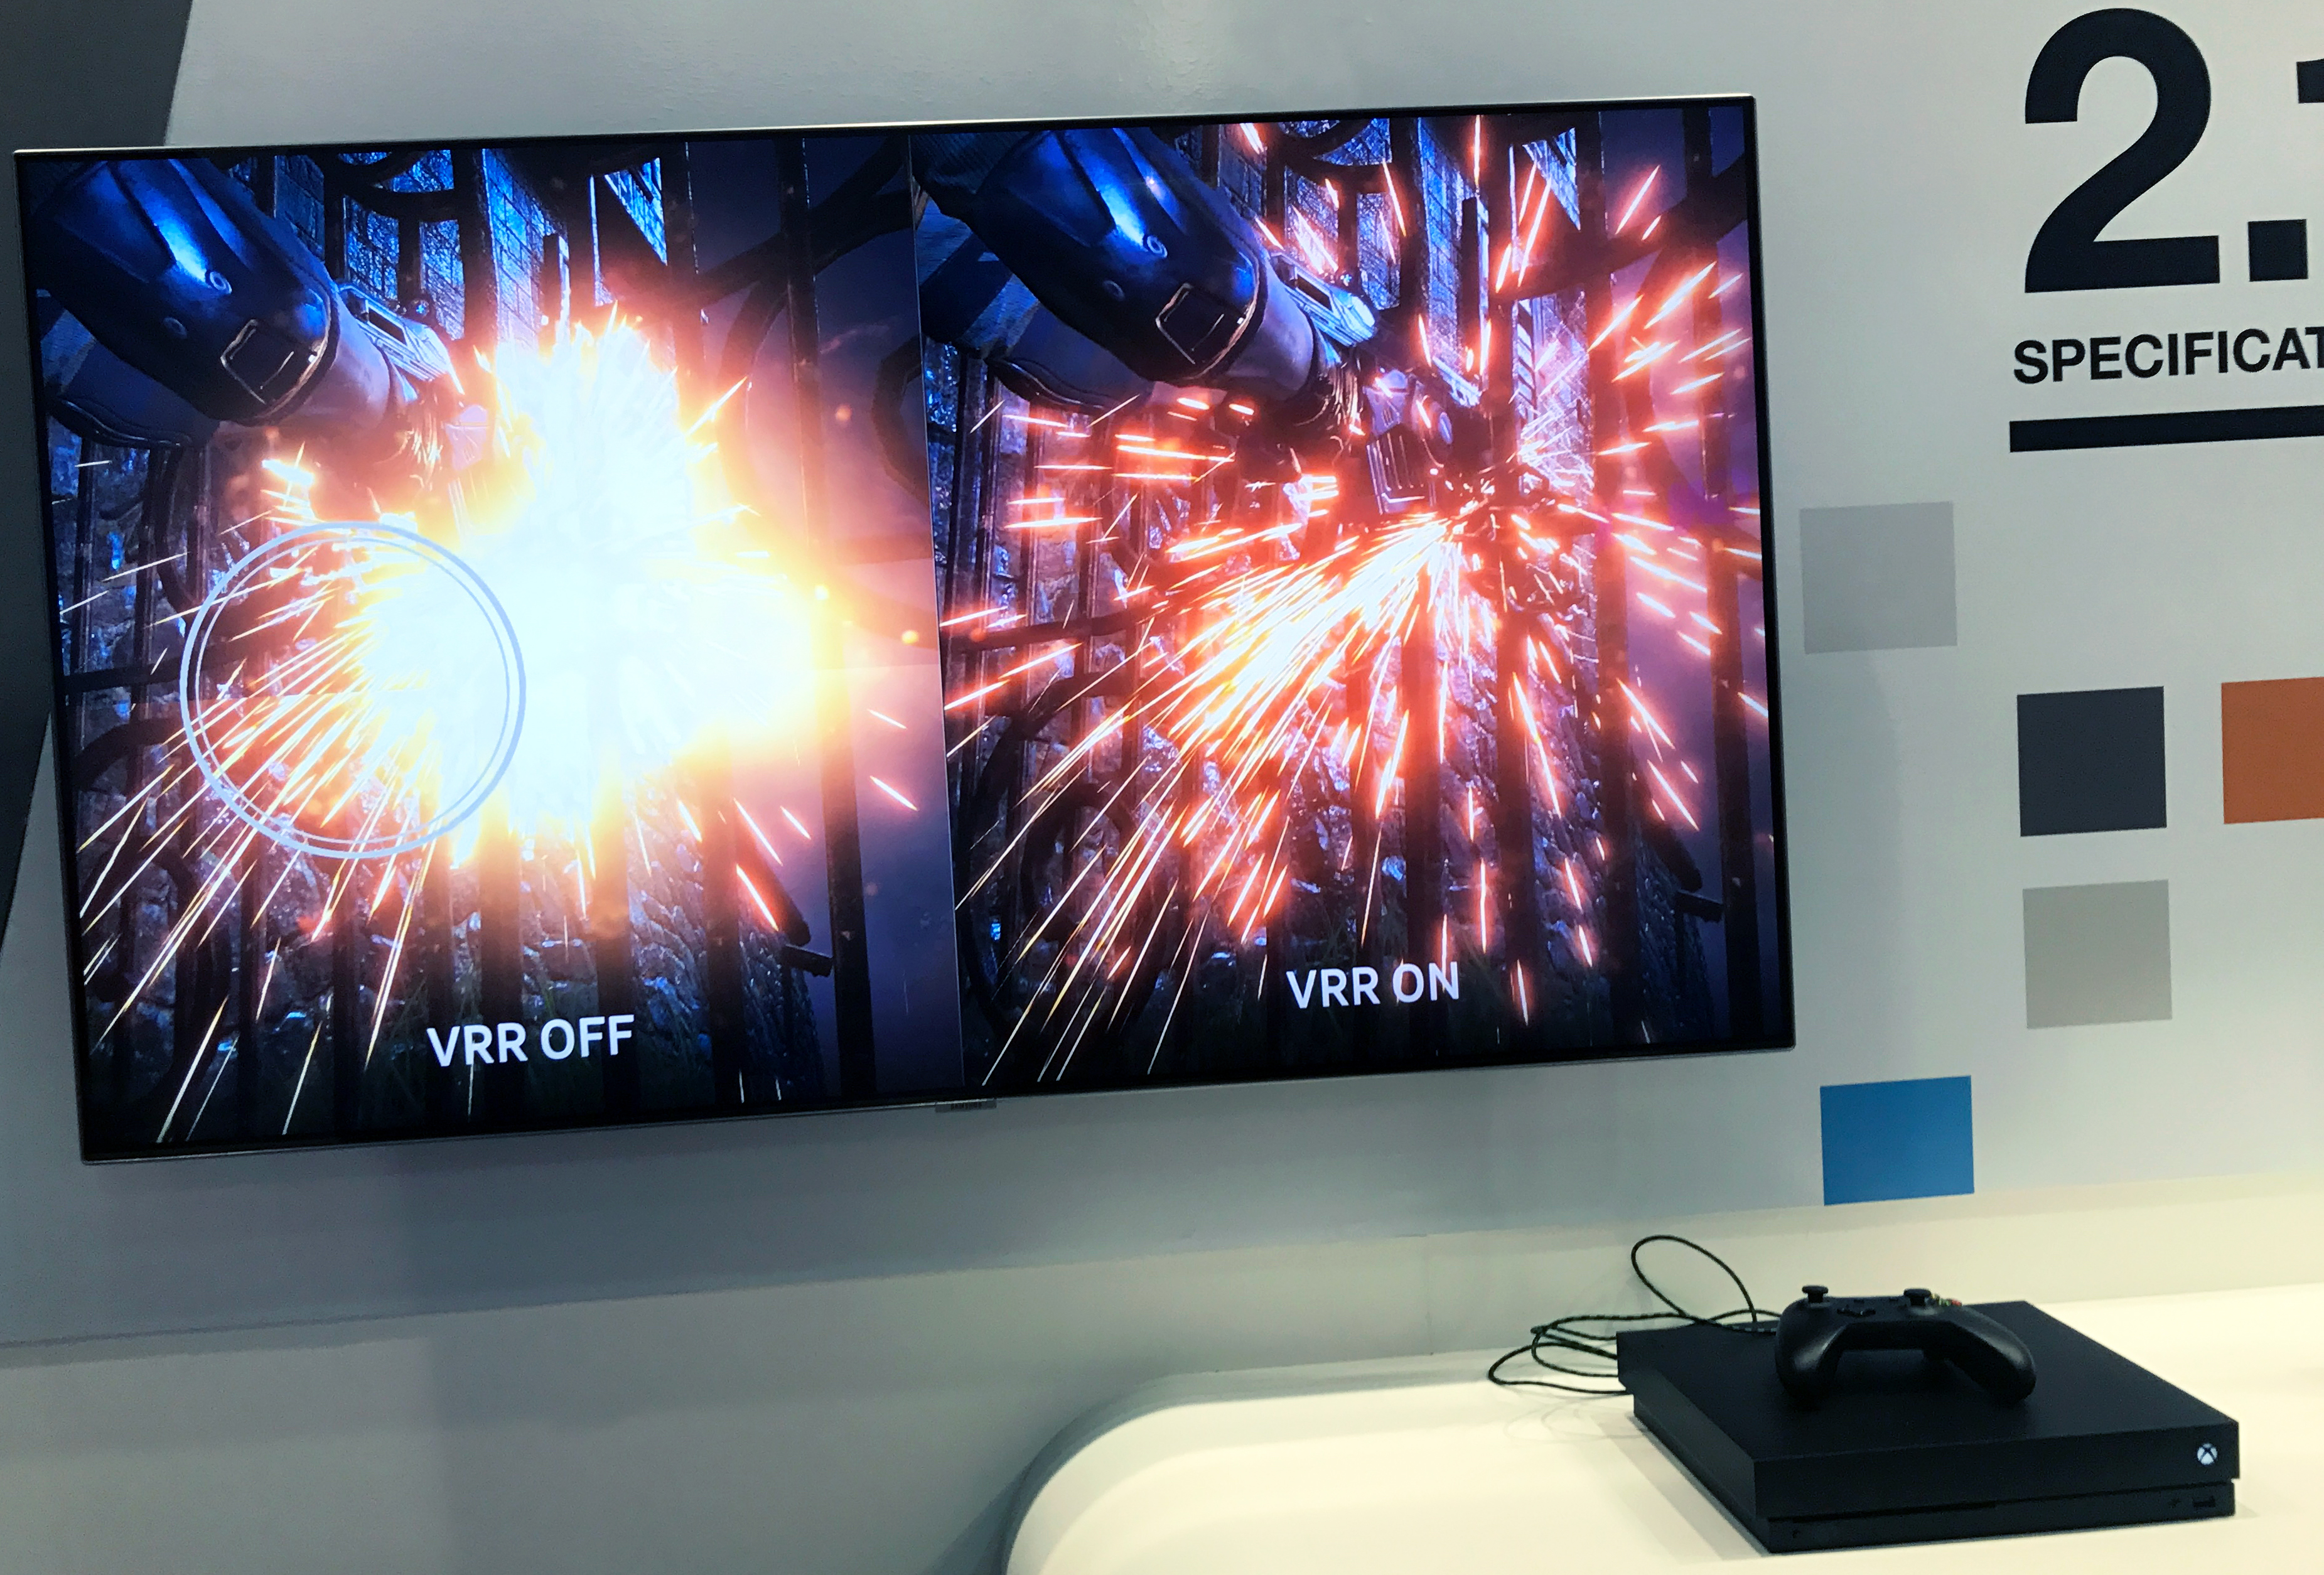 HDMI Forum Demonstrates HDMI 2 1 VRR Capabilities on Samsung TV